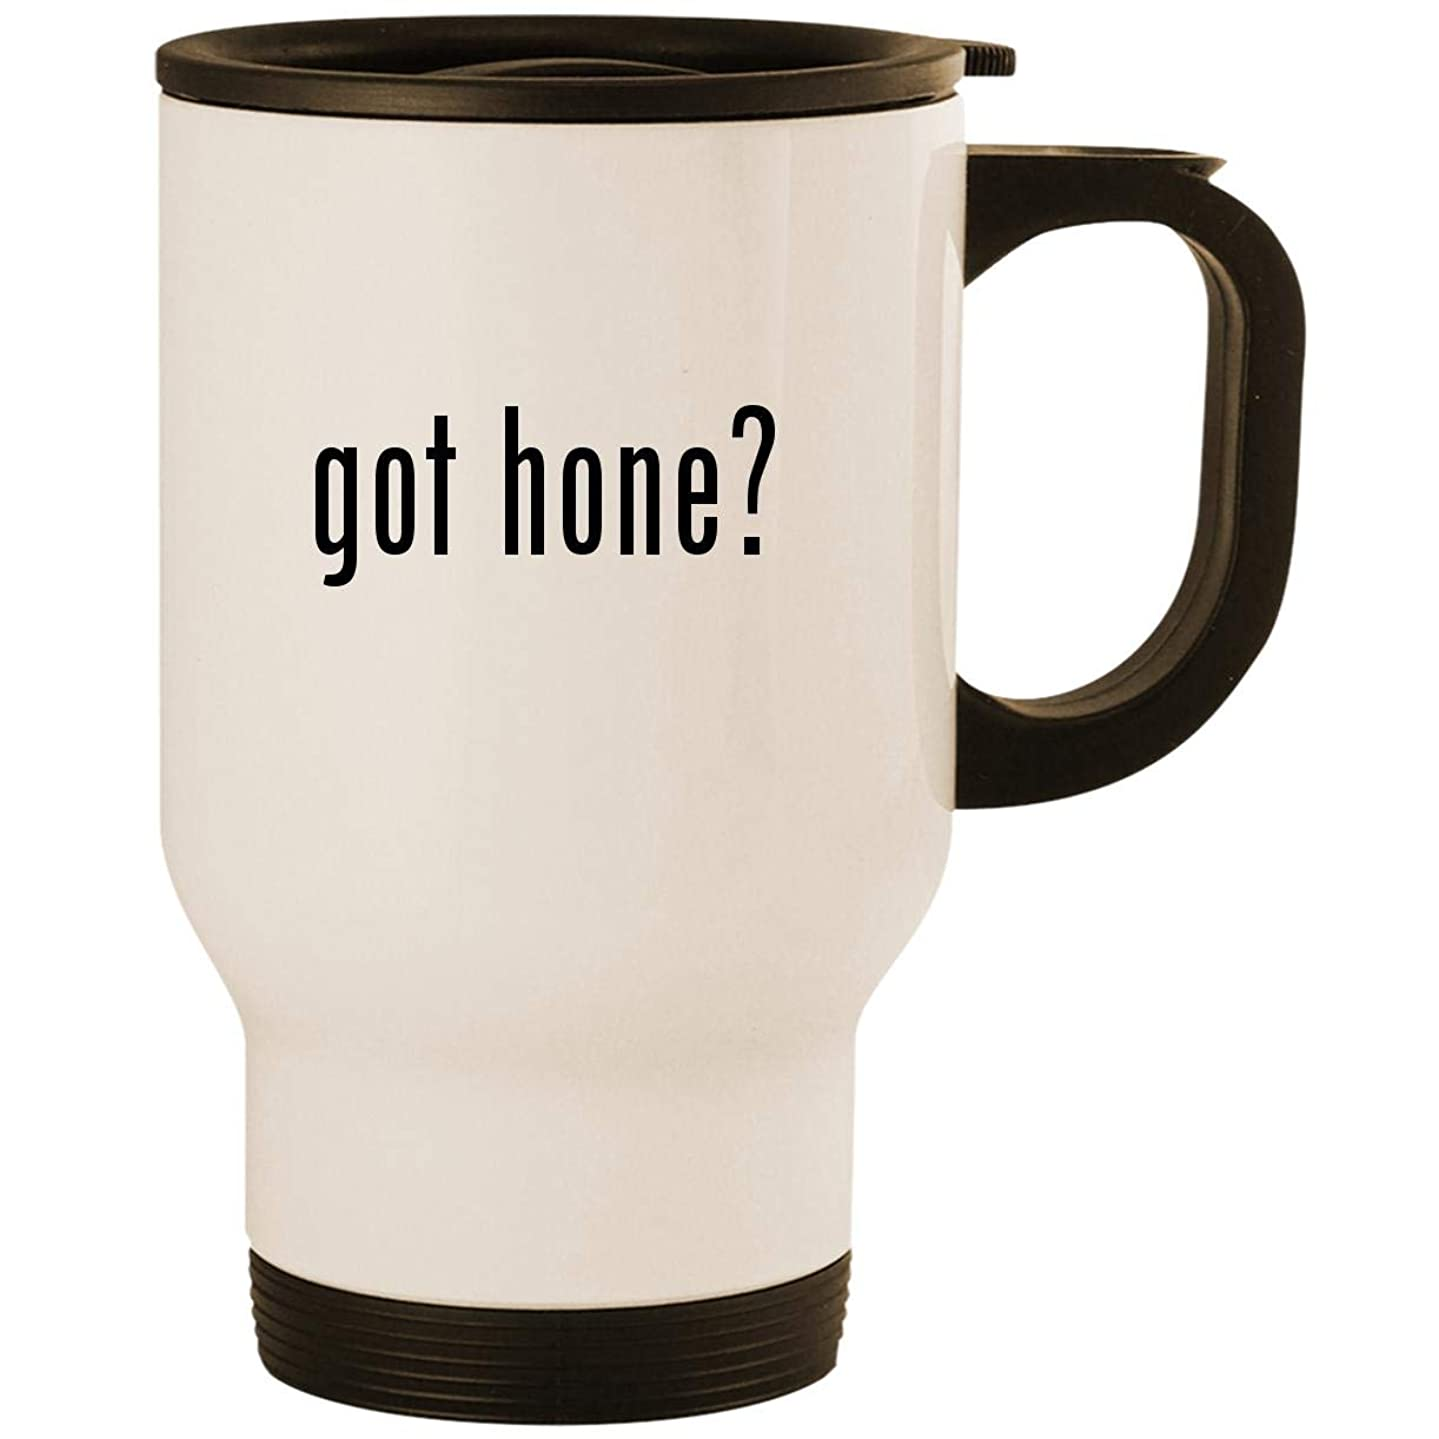 got hone? - Stainless Steel 14oz Road Ready Travel Mug, White